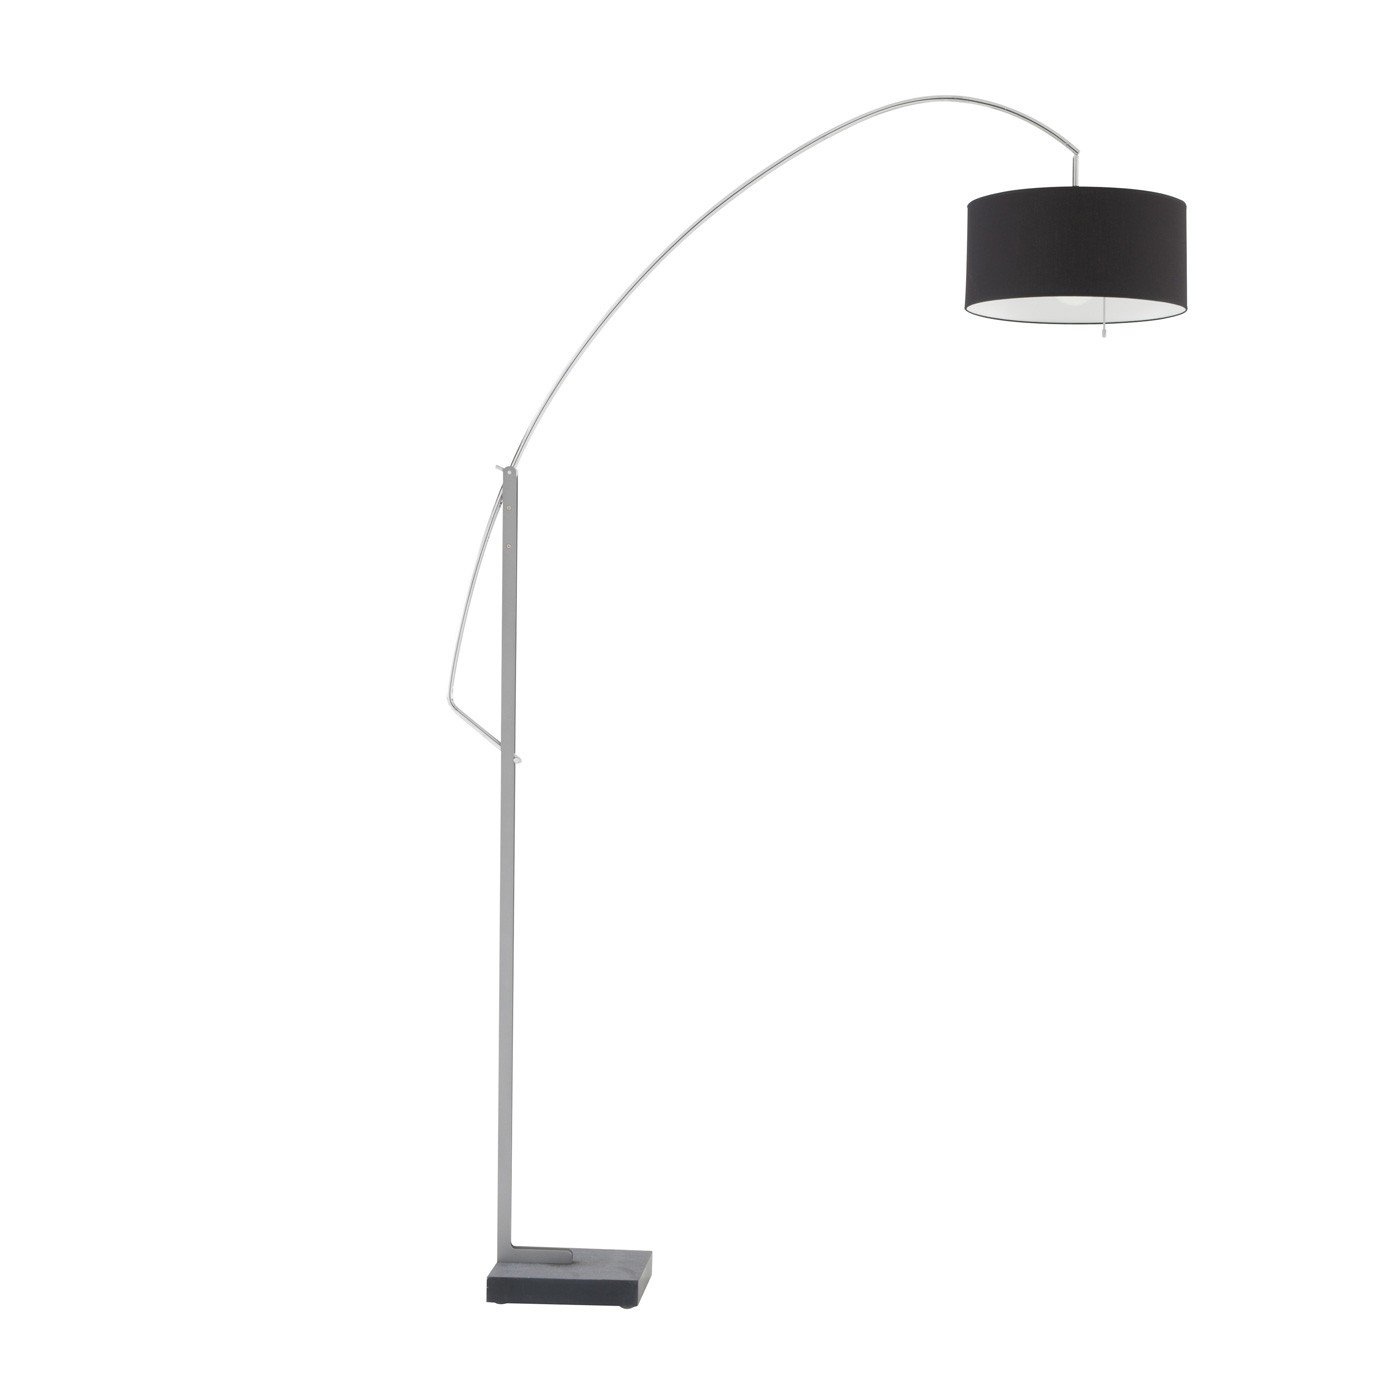 Mama floor lamp by thibault dsombre black mad for modern mama floor lamp by thibault dsombre black aloadofball Gallery